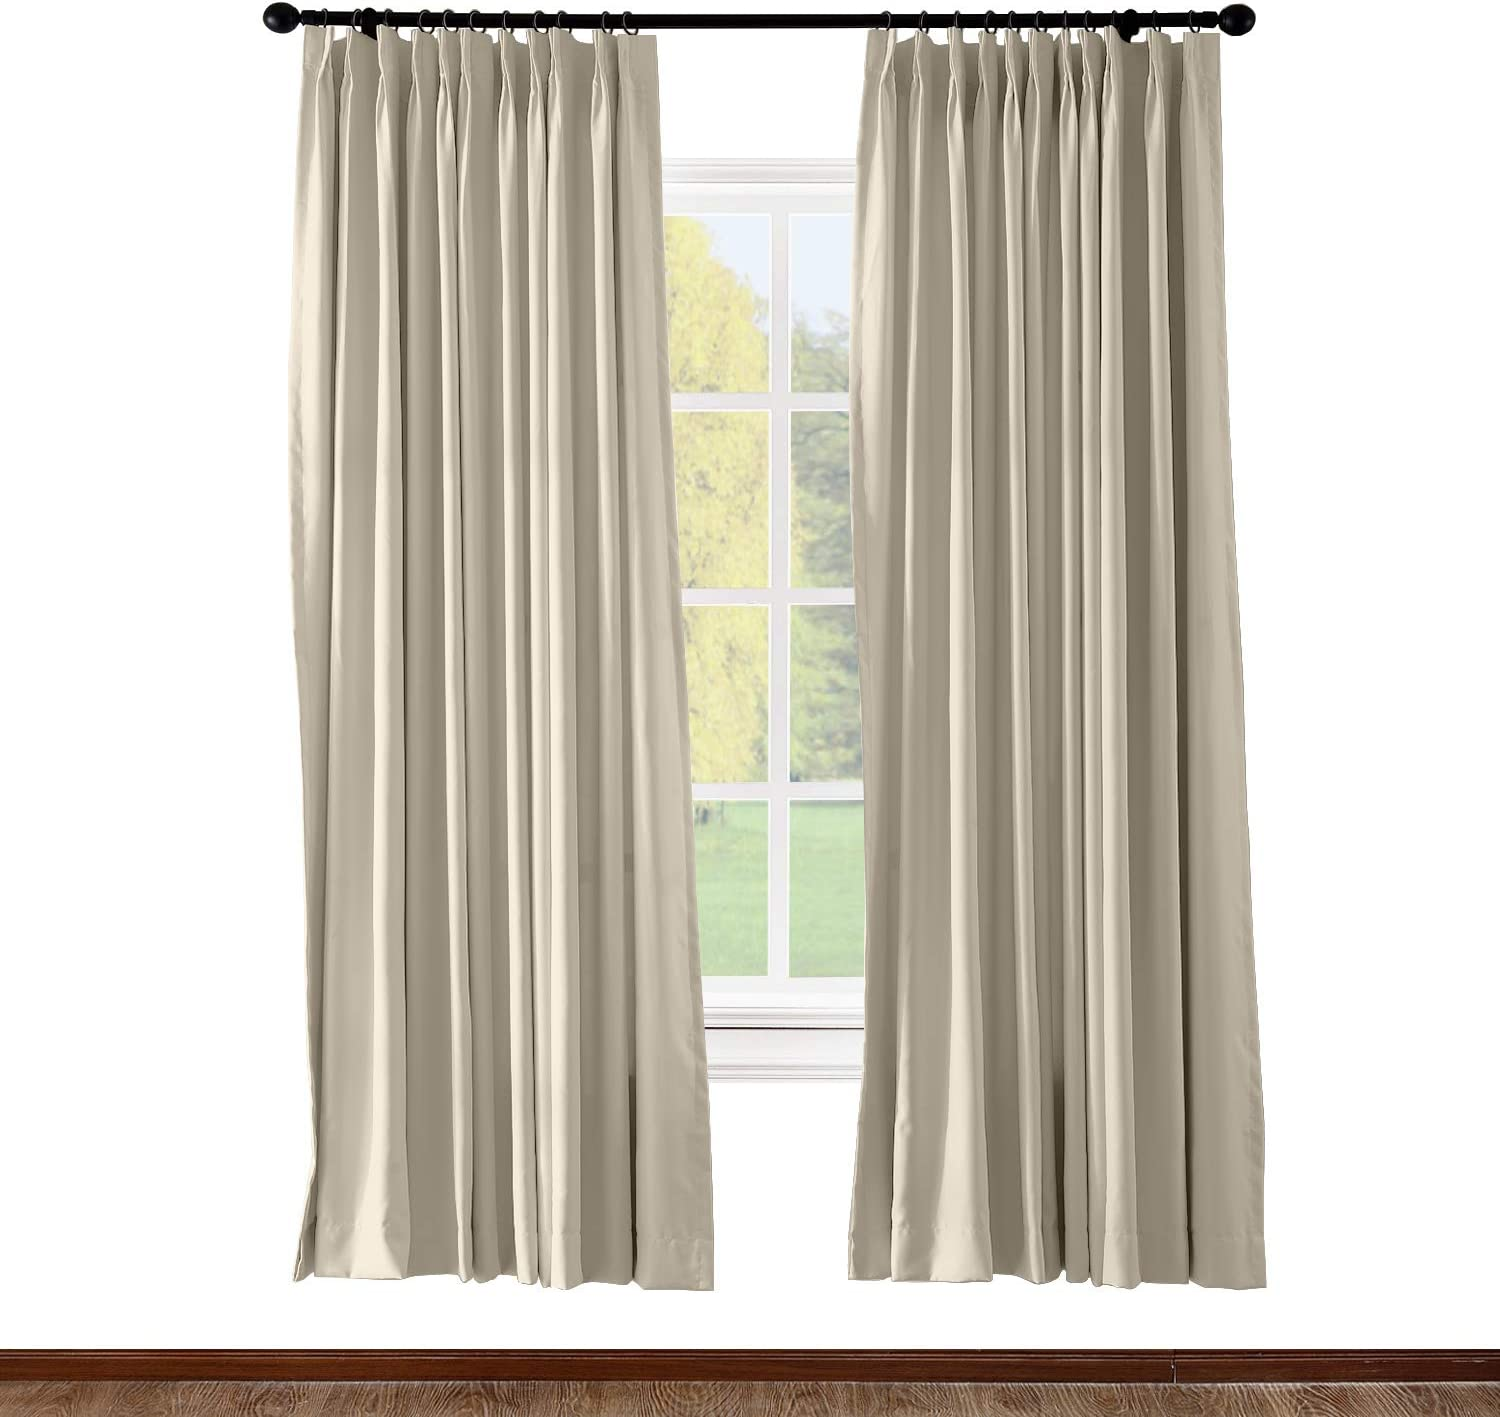 Amazon Com Chadmade Pinch Pleated Curtain Solid Thermal Insulated Blackout Patio Door Panel Drape For Traverse Rod And Track Beige 84w X 84l Inch 1 Panel Kitchen Dining